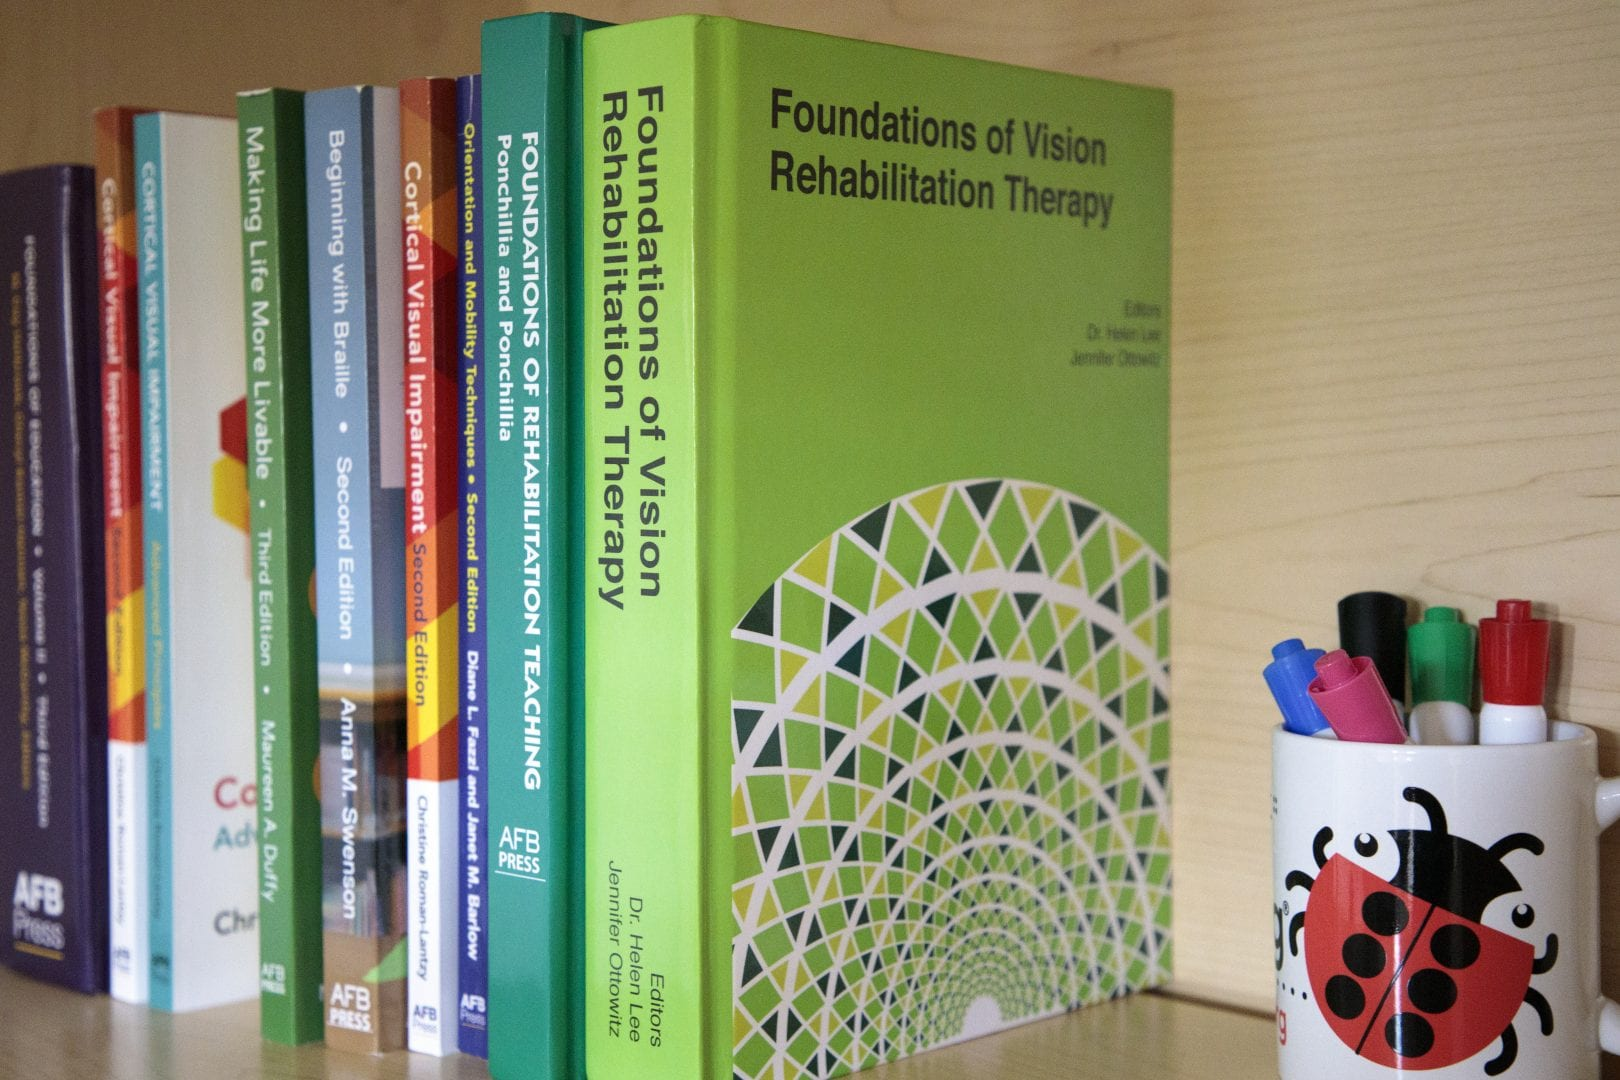 the new foundations of vision rehabilitation therapy book on a shelf with other text books